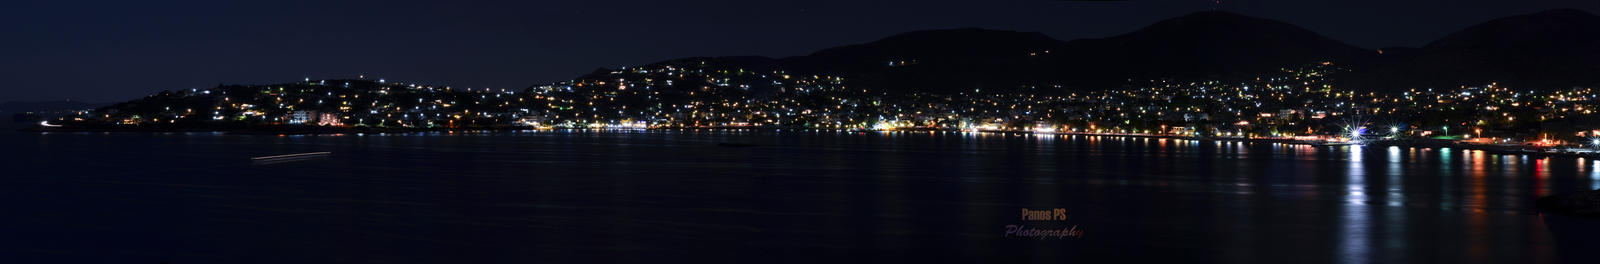 Selinia by night  by PanosPS